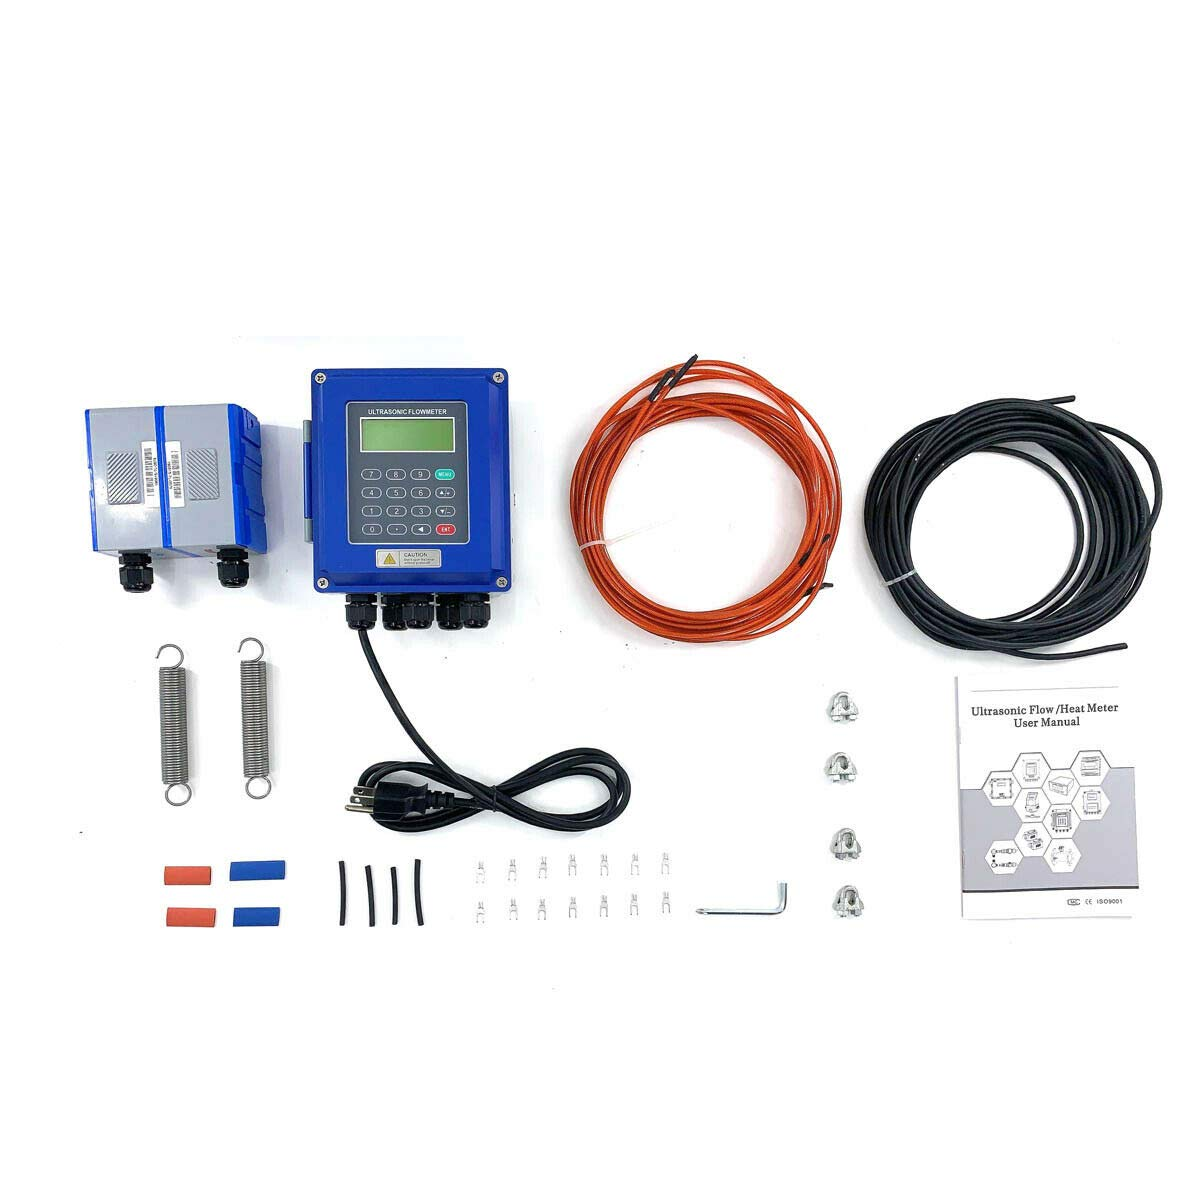 DOMINTY TUF-2000B+TL-5 Ultrasonic Flow Meter Flowmeter Portable Waterproof Ultrasonic Flow Meter Kit for Pipe Size DN700-6000mm 27.56-236.22in with Clamp-on Large Transducer TL-5